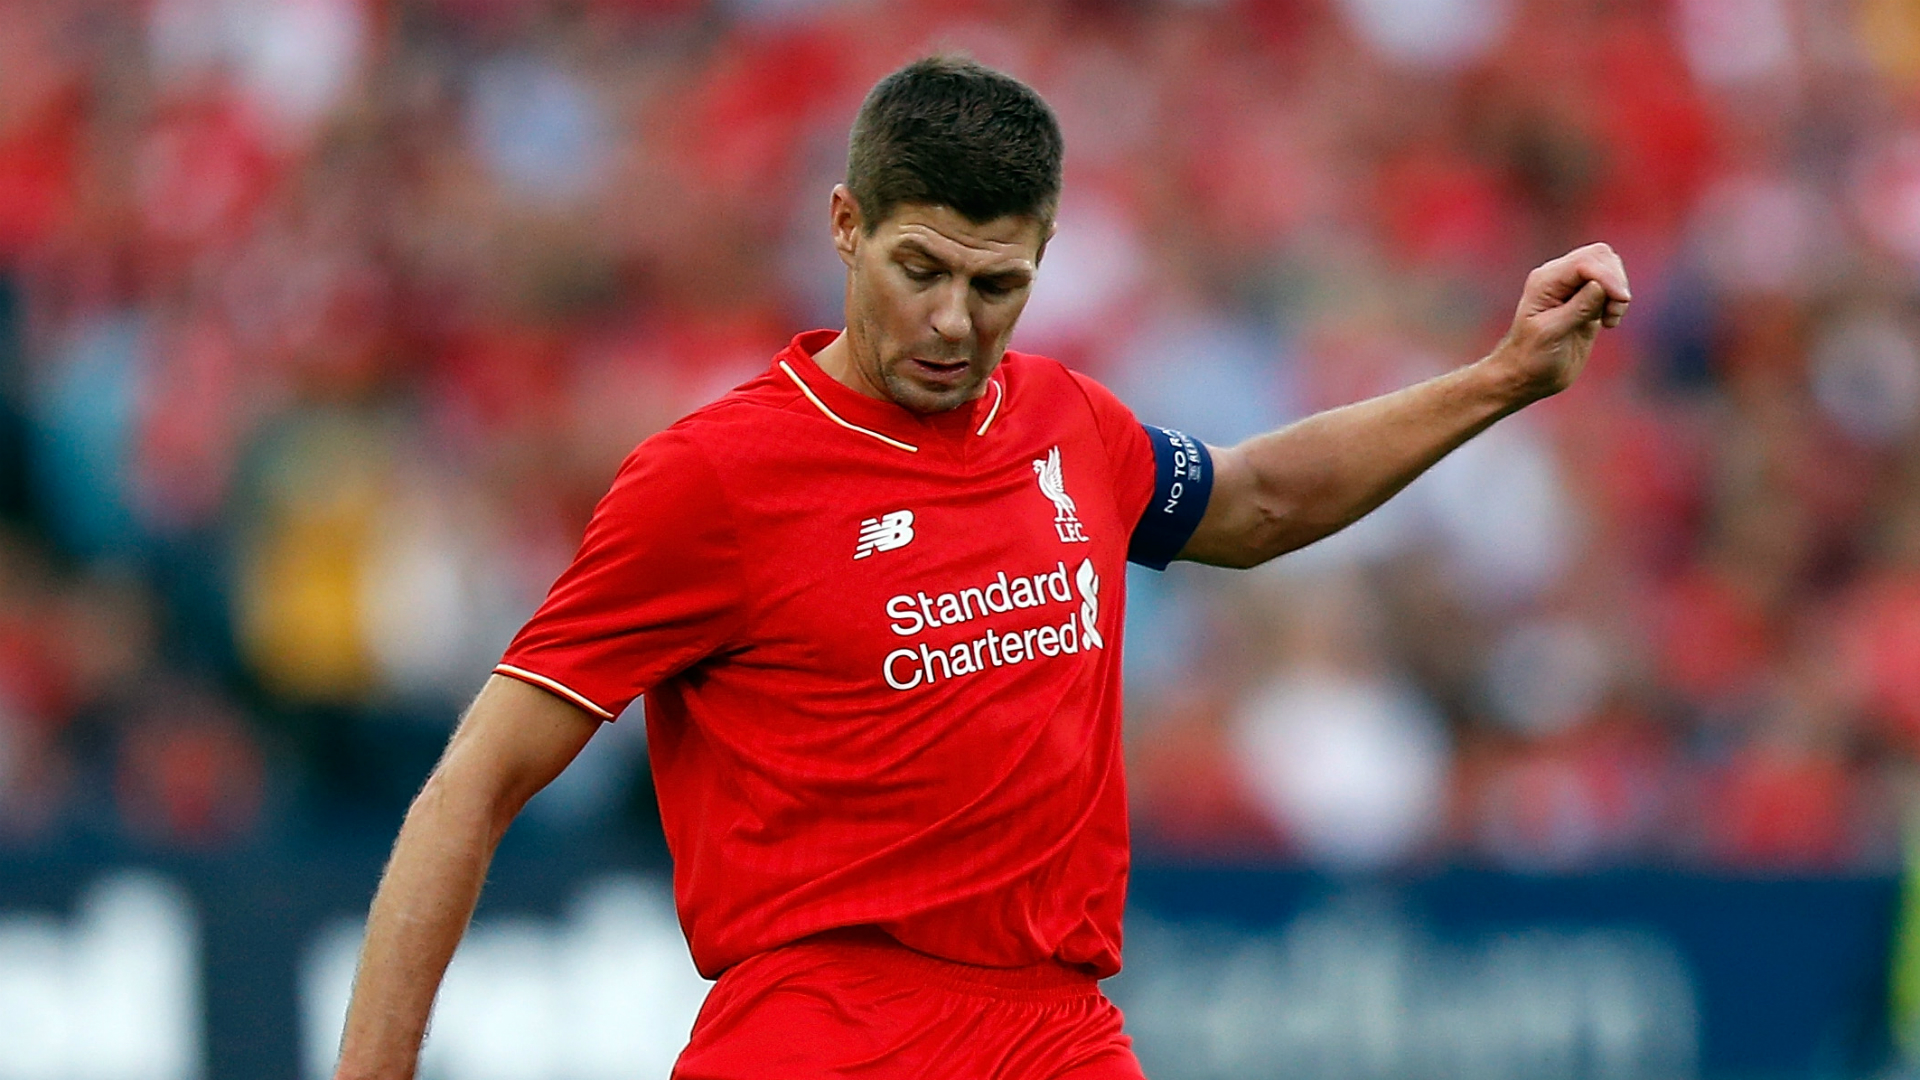 Gerrard back in Liverpool shirt for Sydney exhibition